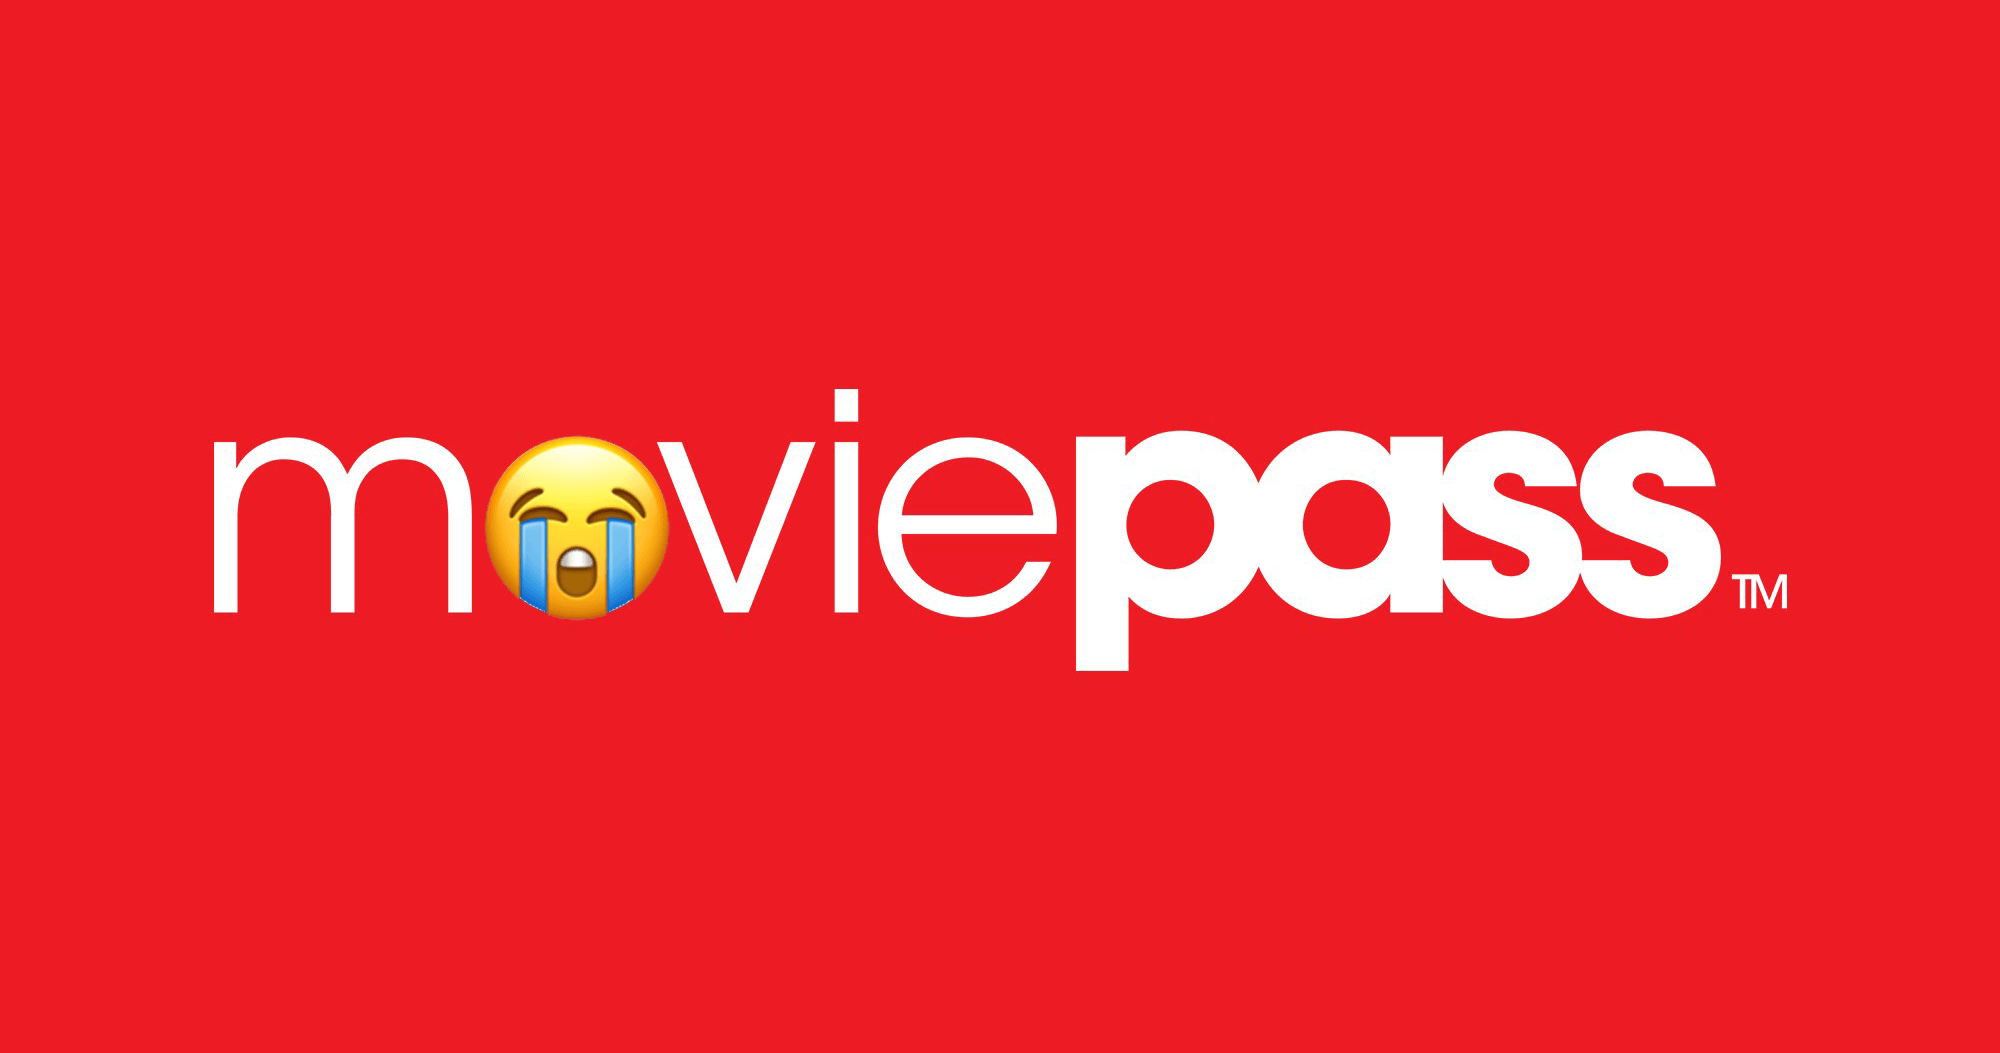 MoviePass never had a chance